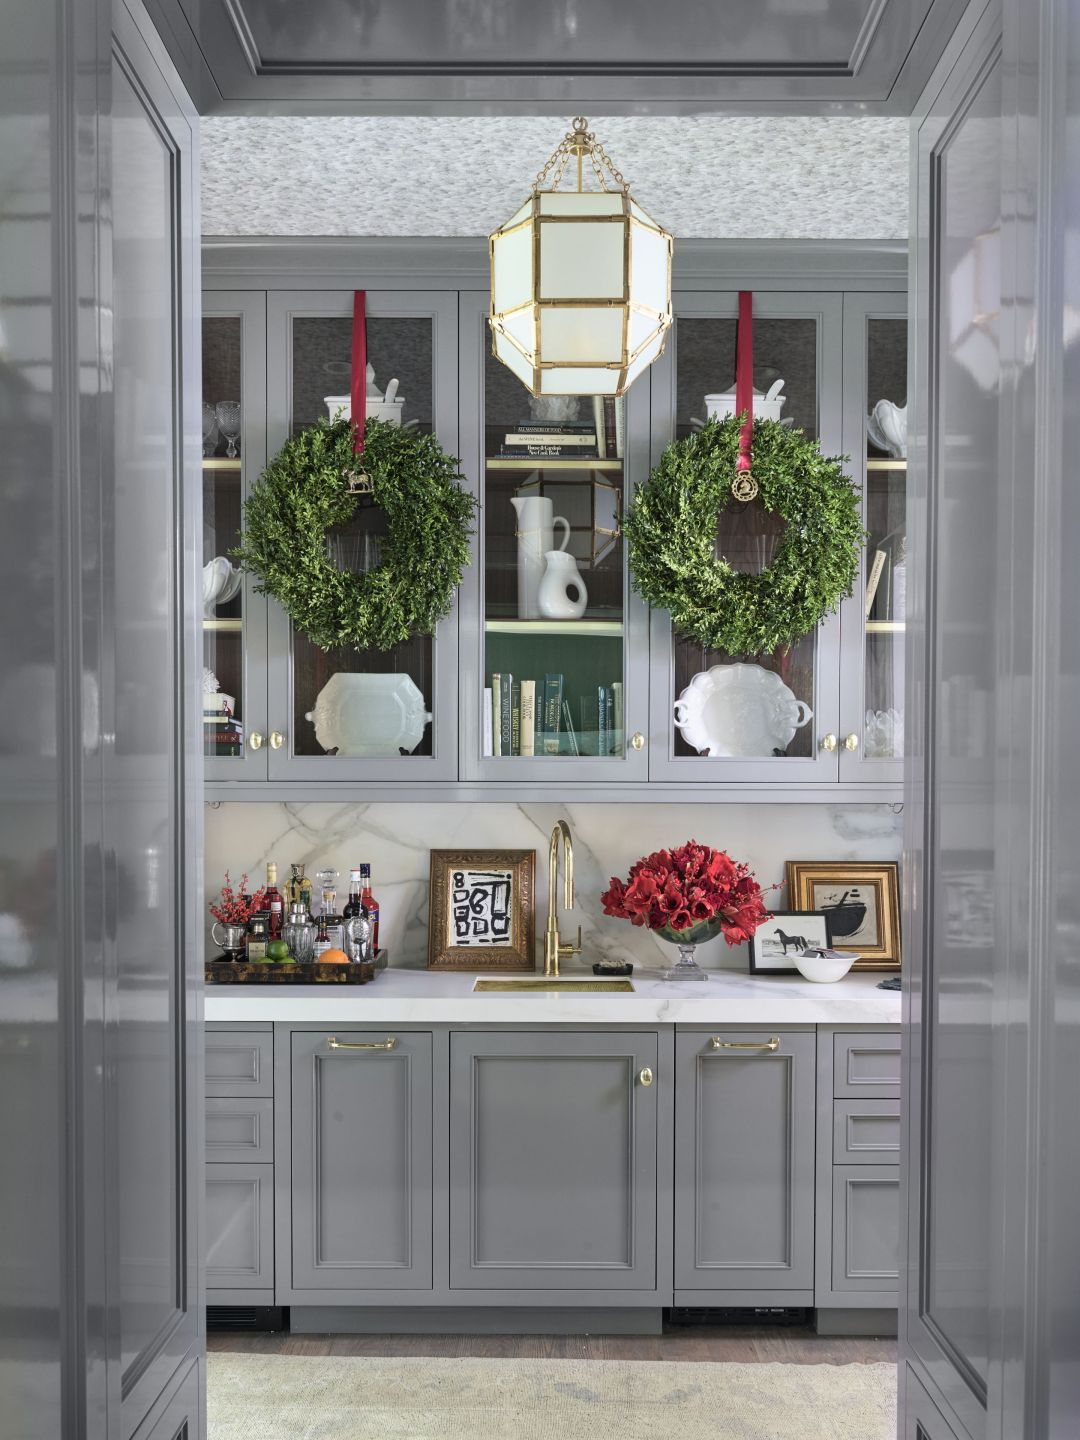 AHL_181113_showhouse32102_Kingdom-Woodworks-Cabinetry-with-Lauren-Elaine-interior-design Home for the Holidays 2018: Atlanta, GA Style